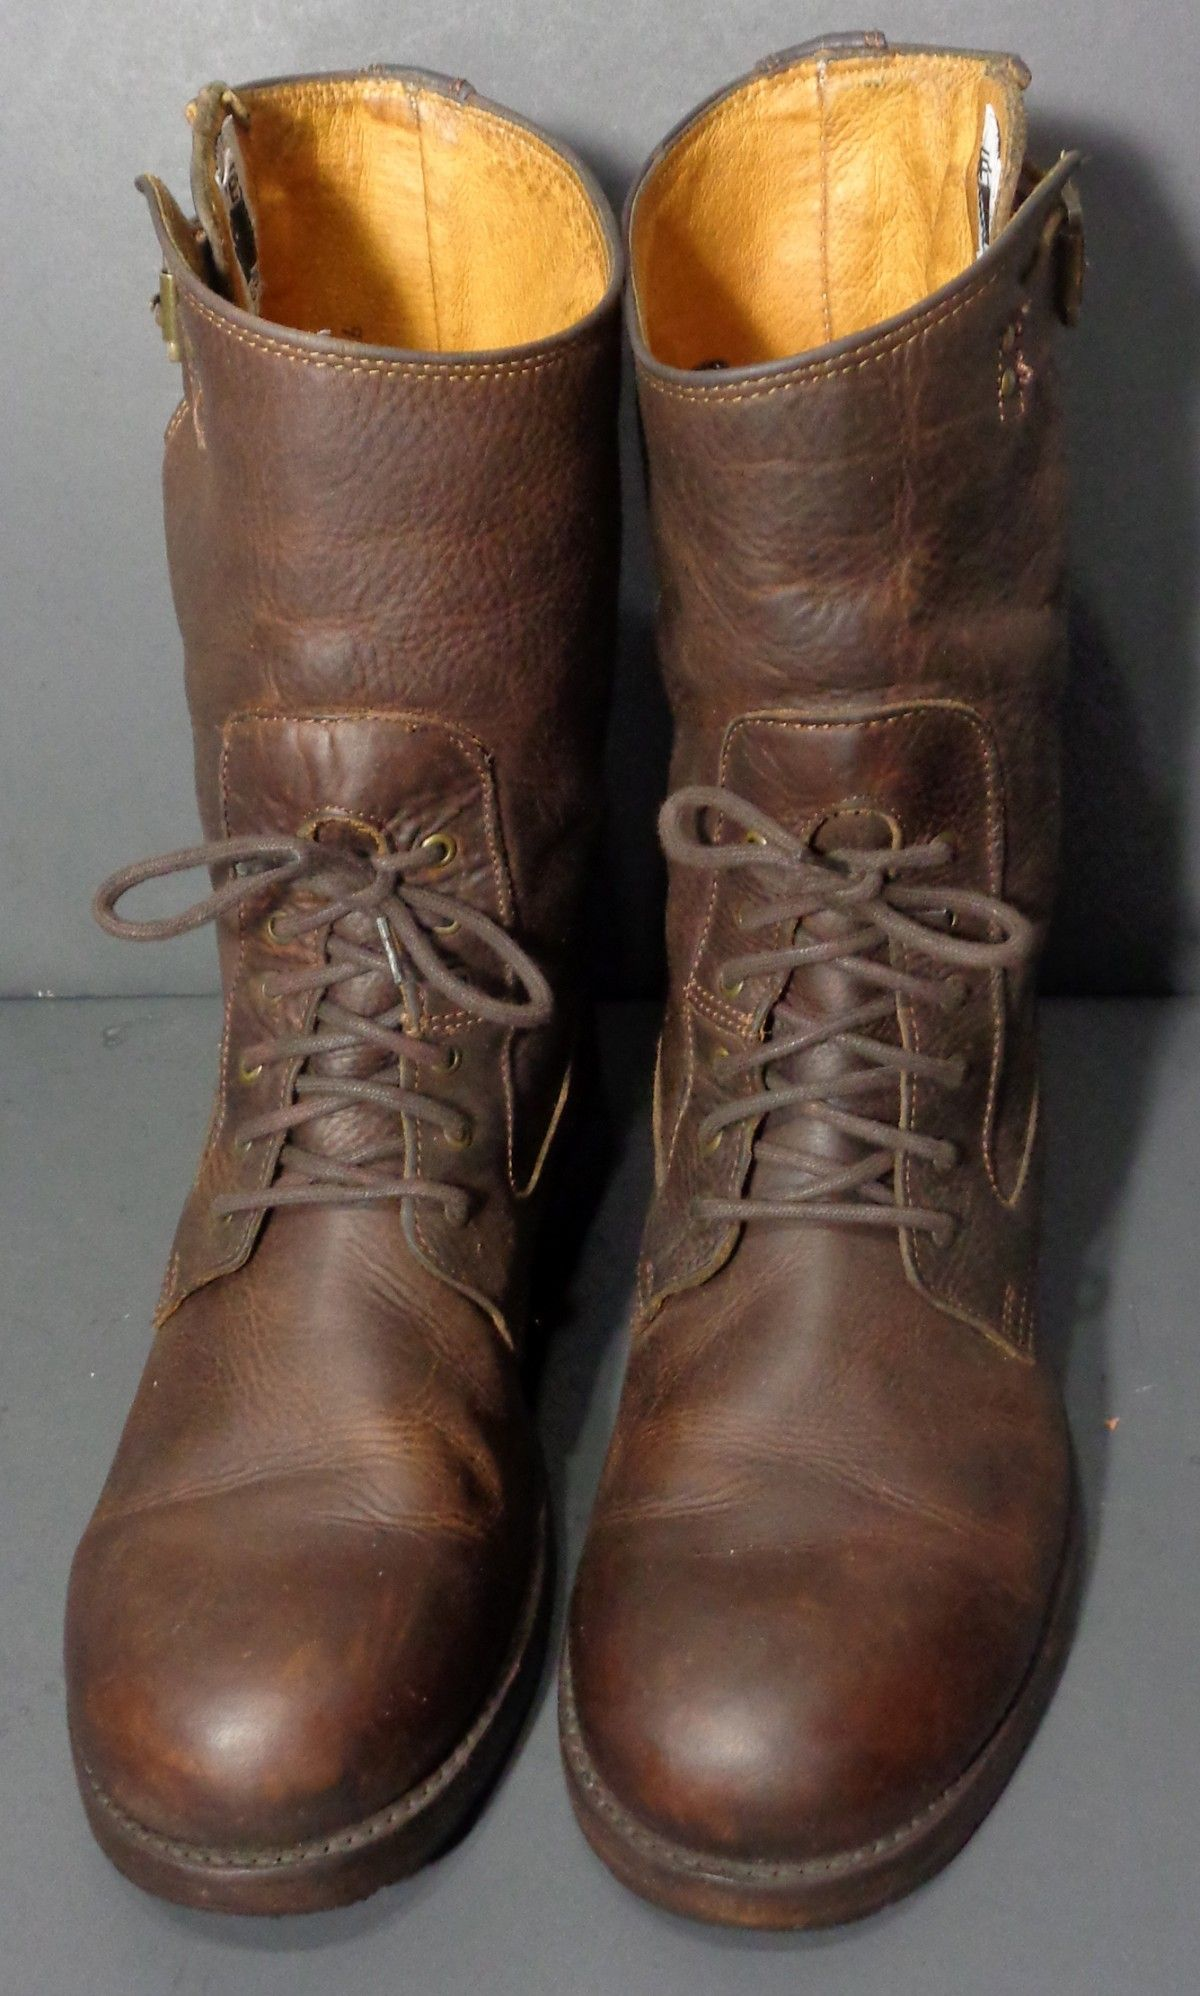 FRYE 87227 ENGINEER LACE UP BROWN LEATHER MOTORCYCLE BOOTS MEN'S ...